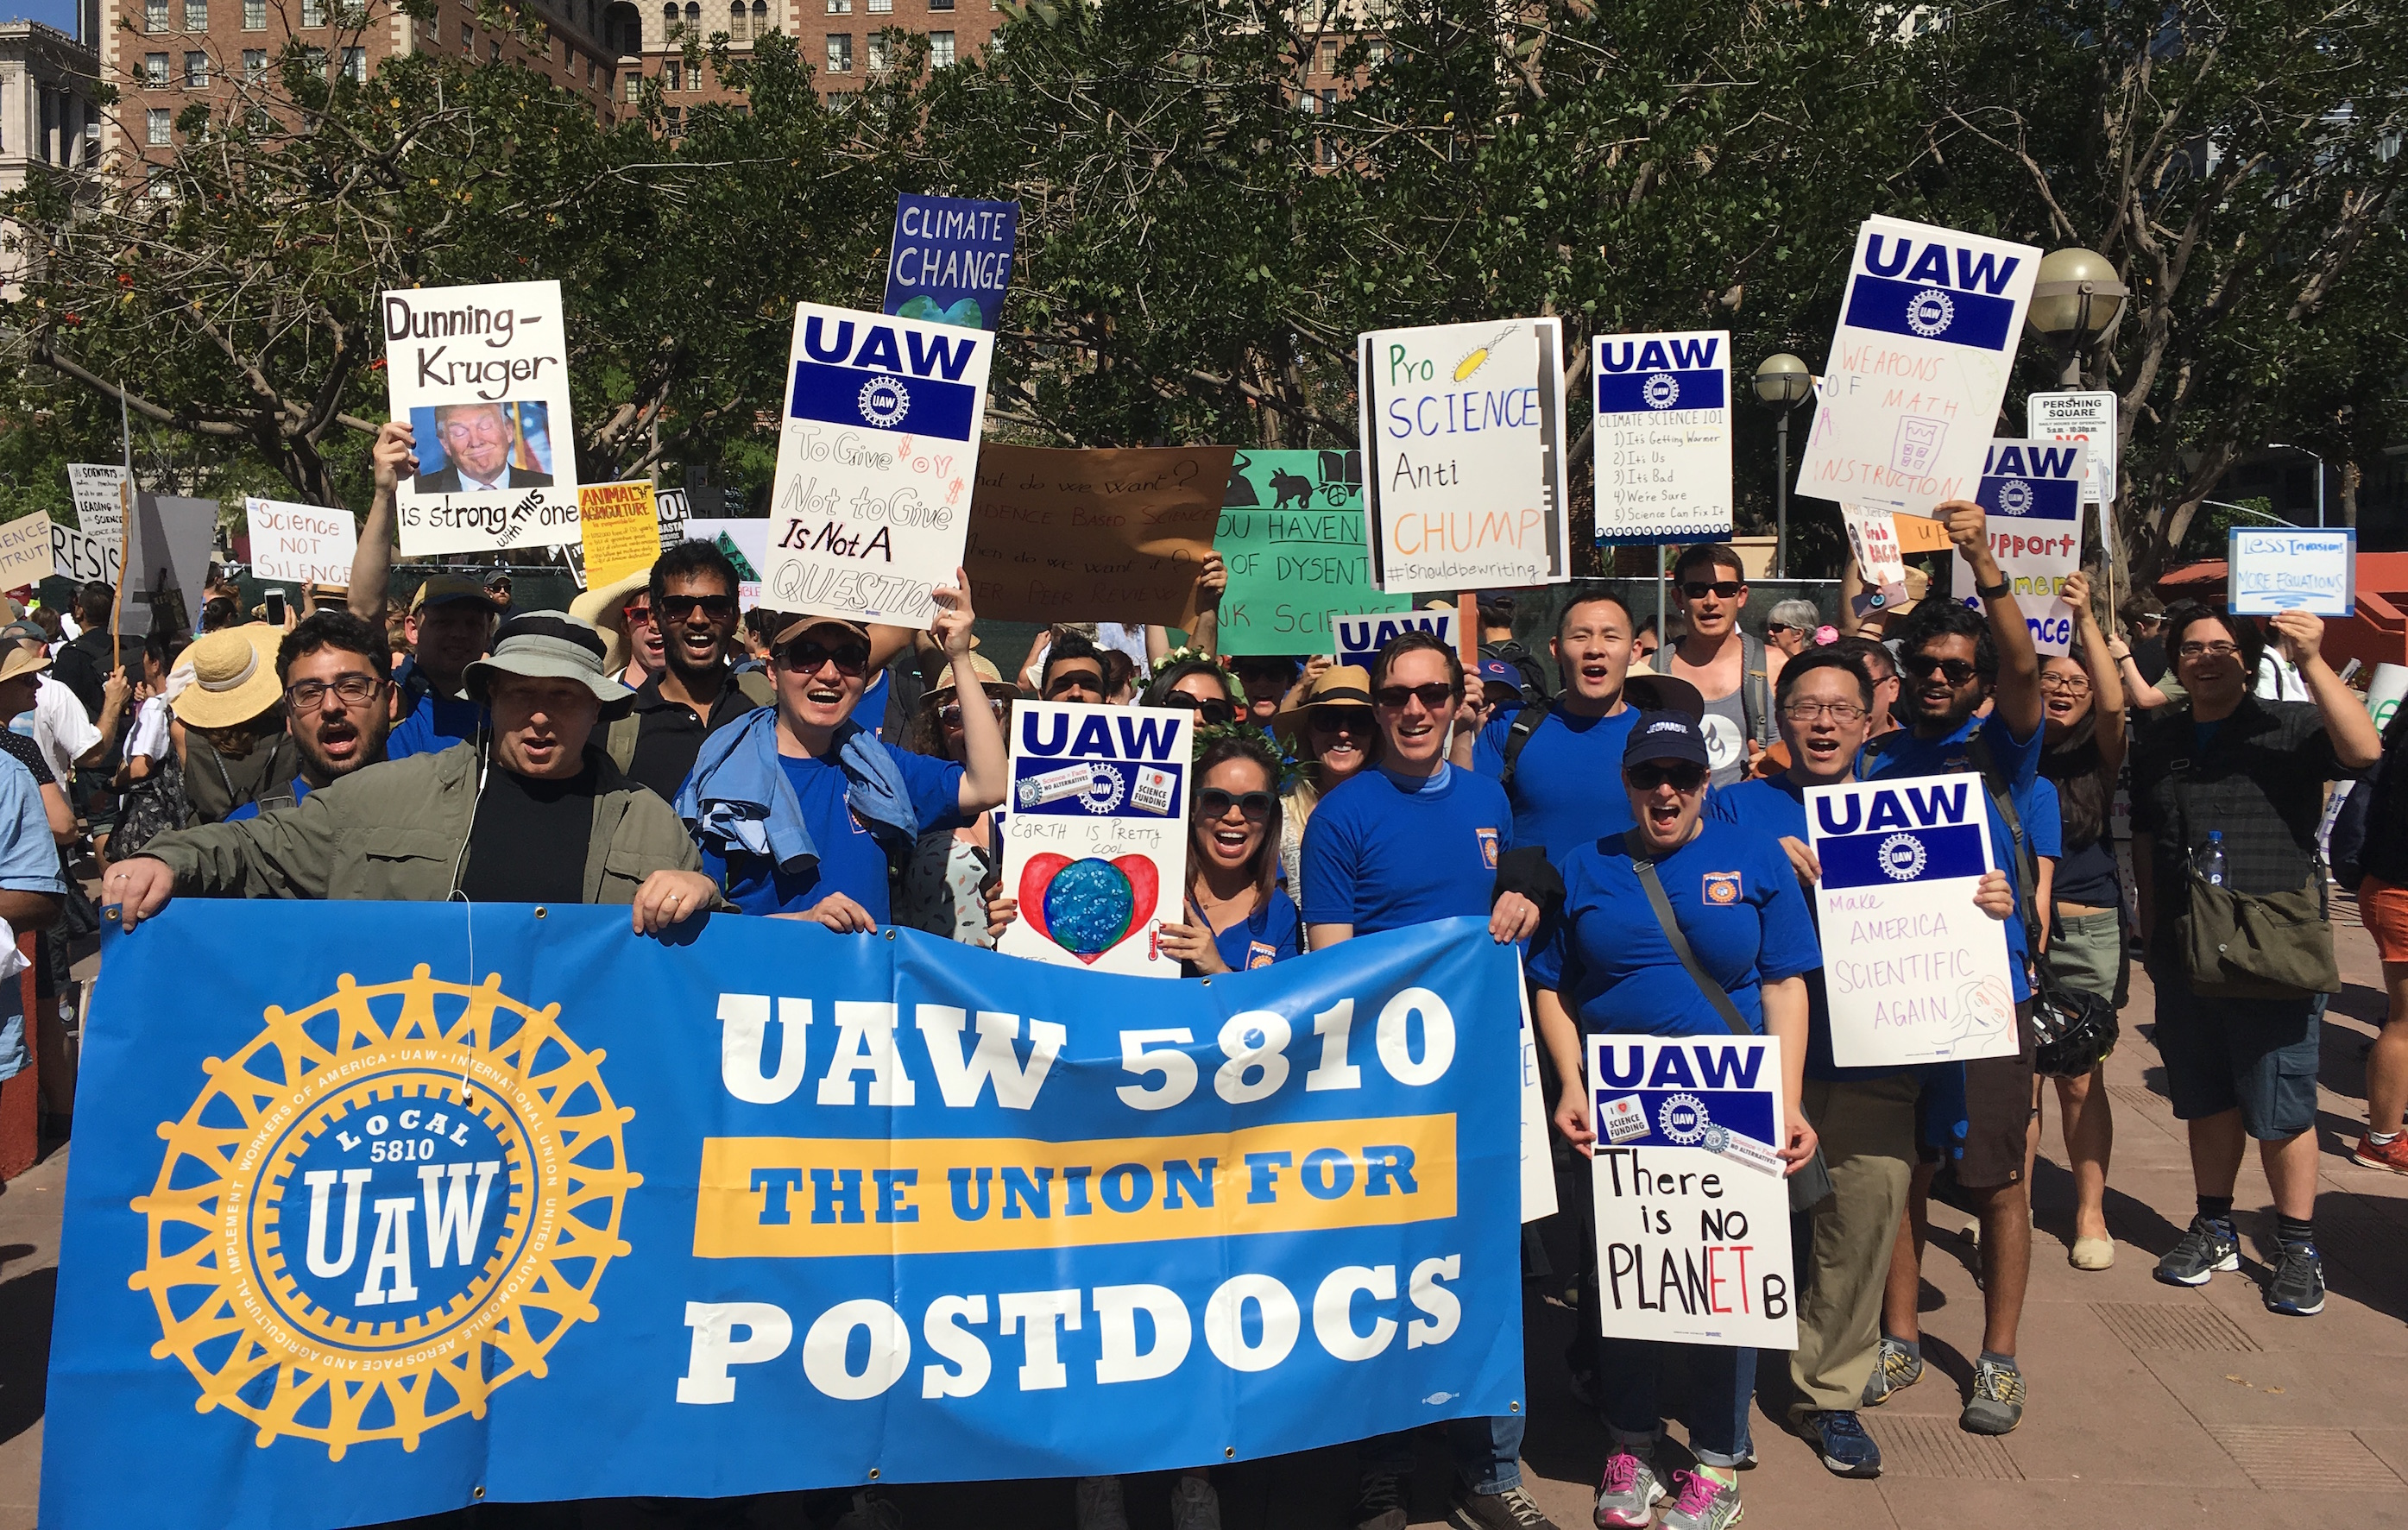 Ucla 2016-2020 Calendar History | UAW Local 5810 | The Union of over 6,500 Postdoctoral